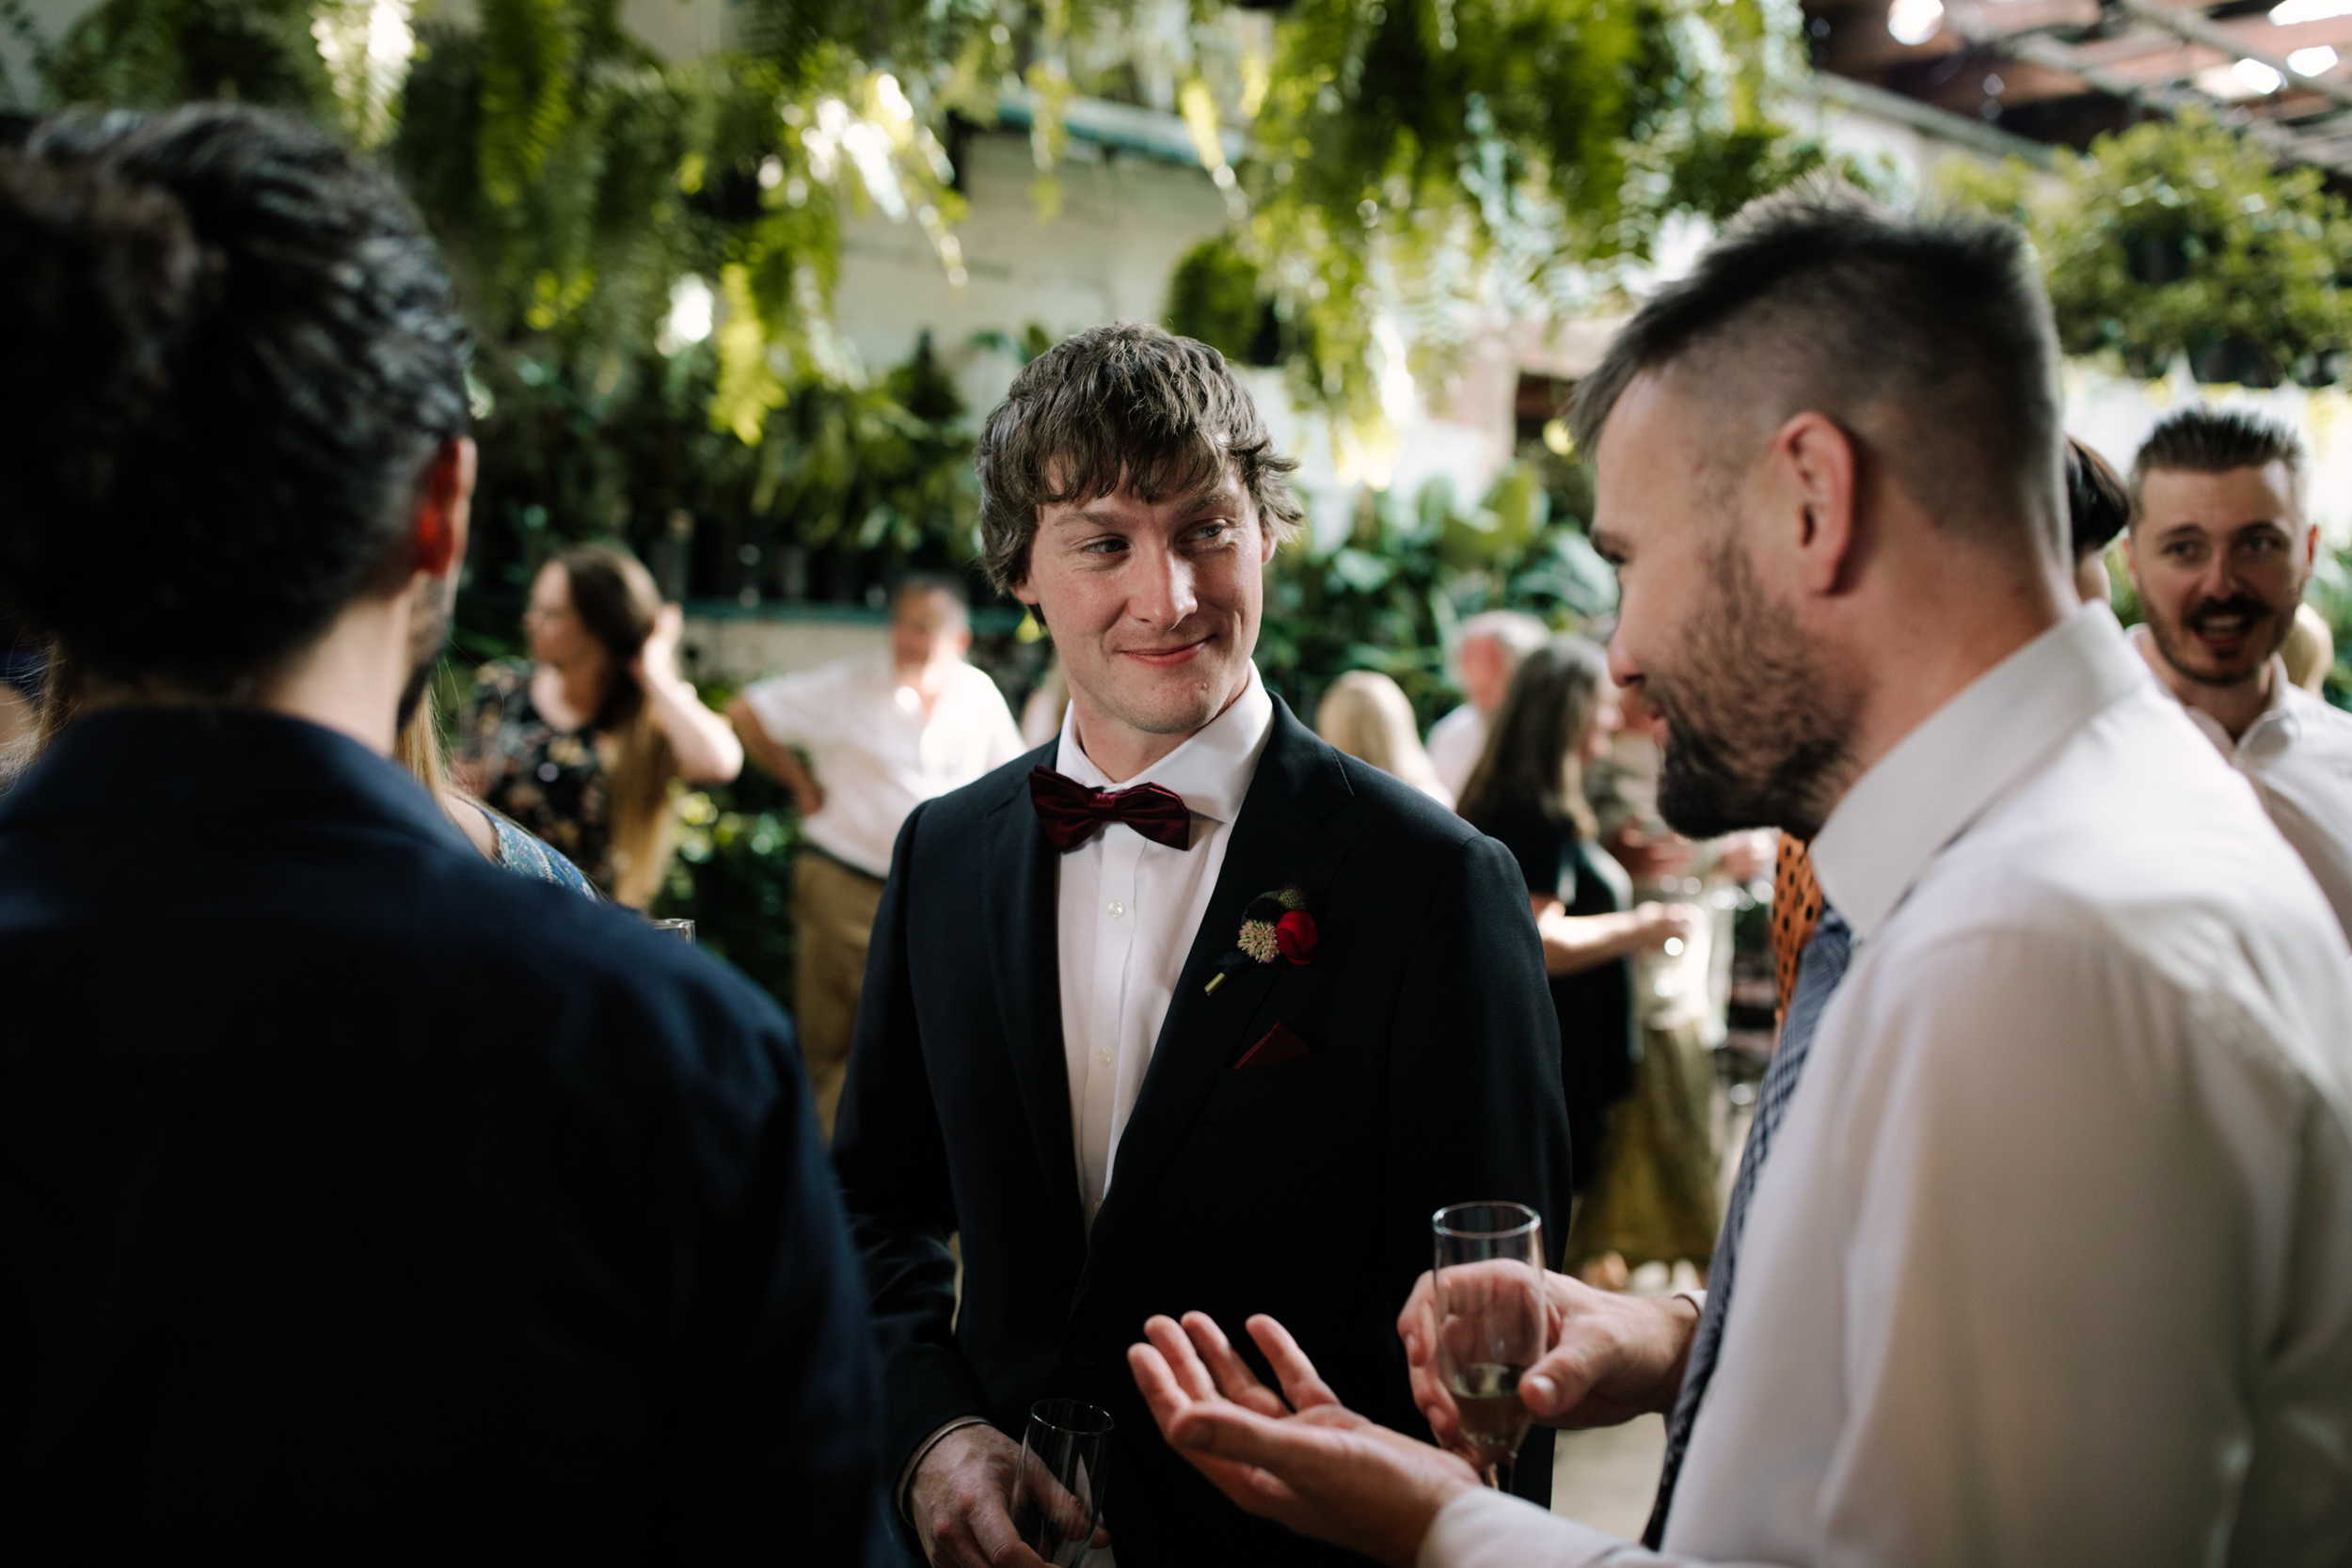 I_Got_You_Babe_Weddings_Emily_Matt_Rupert_Glasshaus_Melbourne0101.JPG